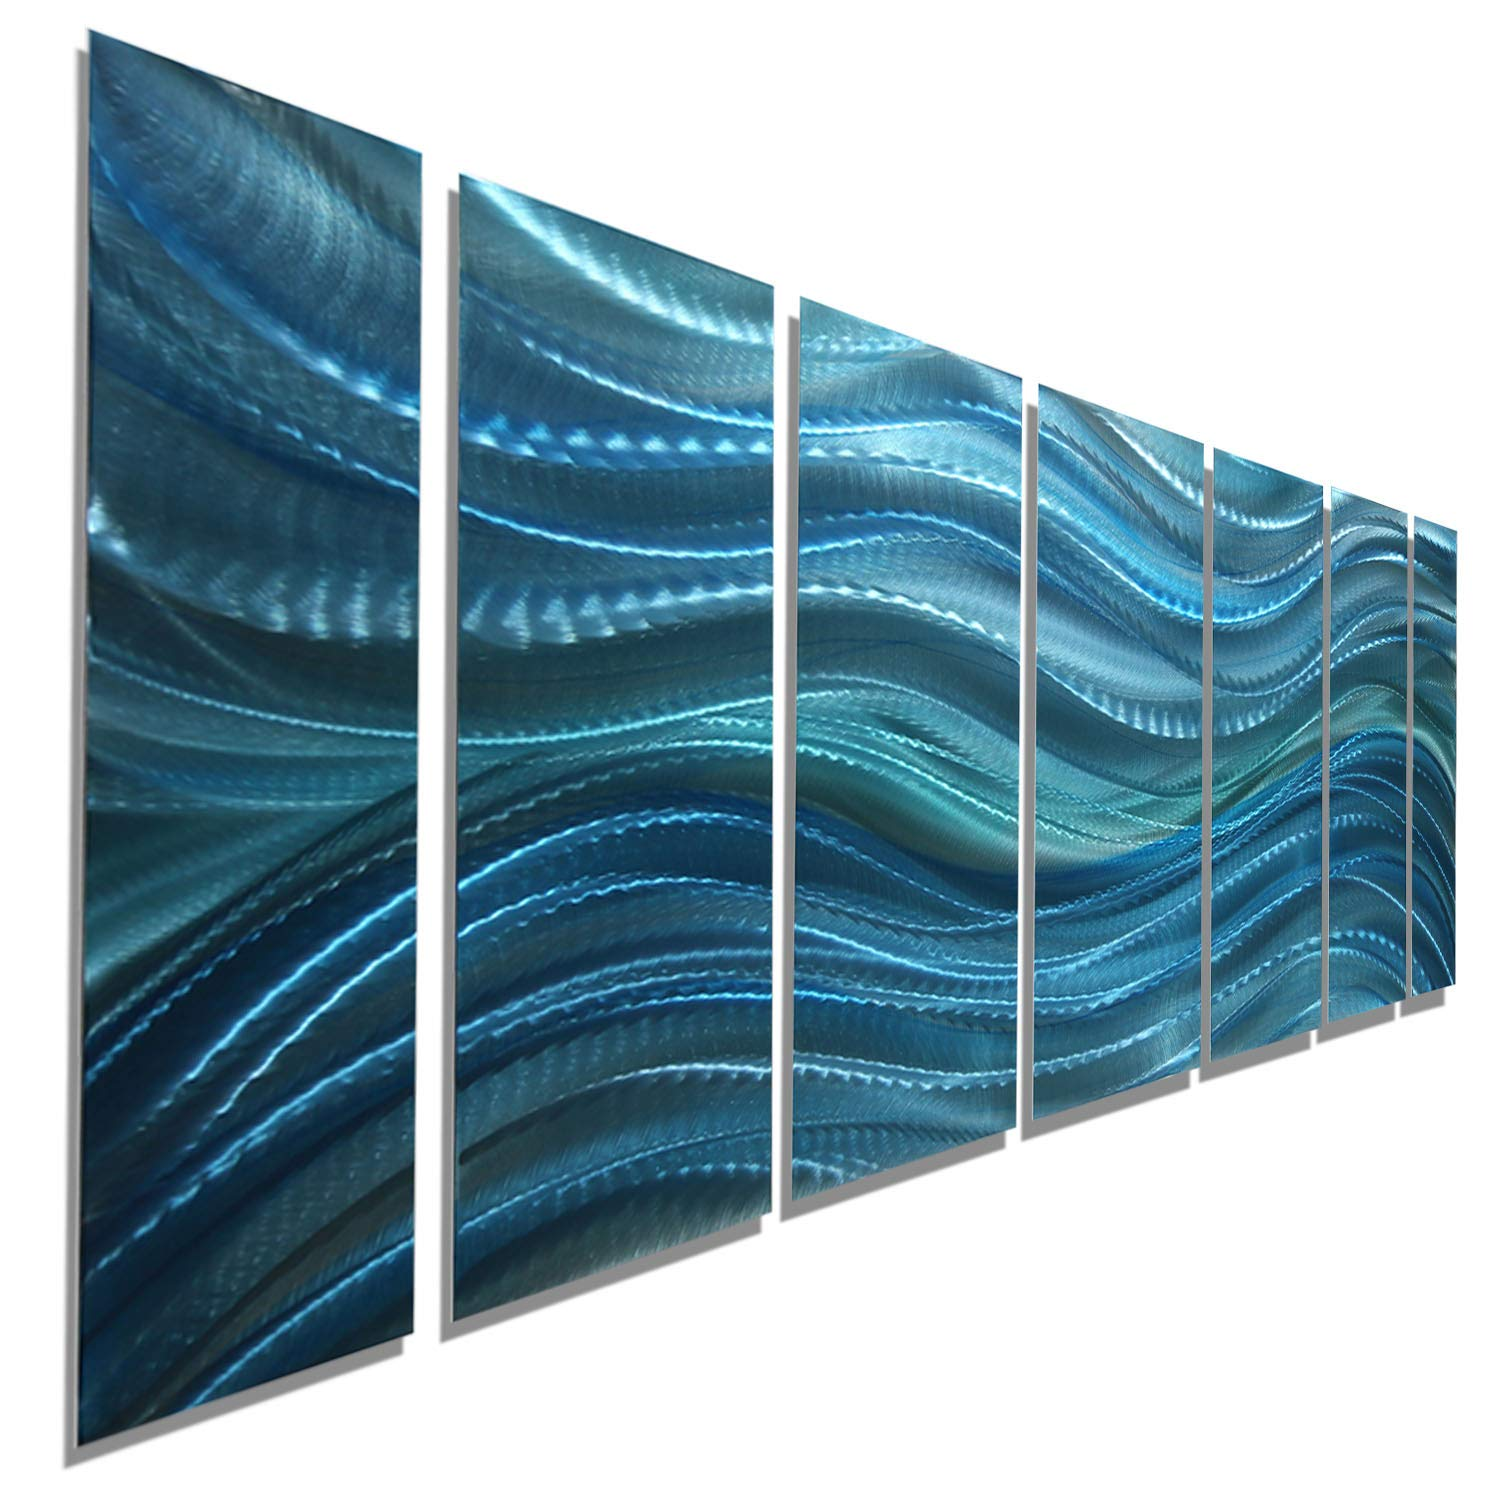 Statements2000 large modern aqua blue water inspired metal wall art abstract multi panel contemporary home office decor calm before the storm xl by